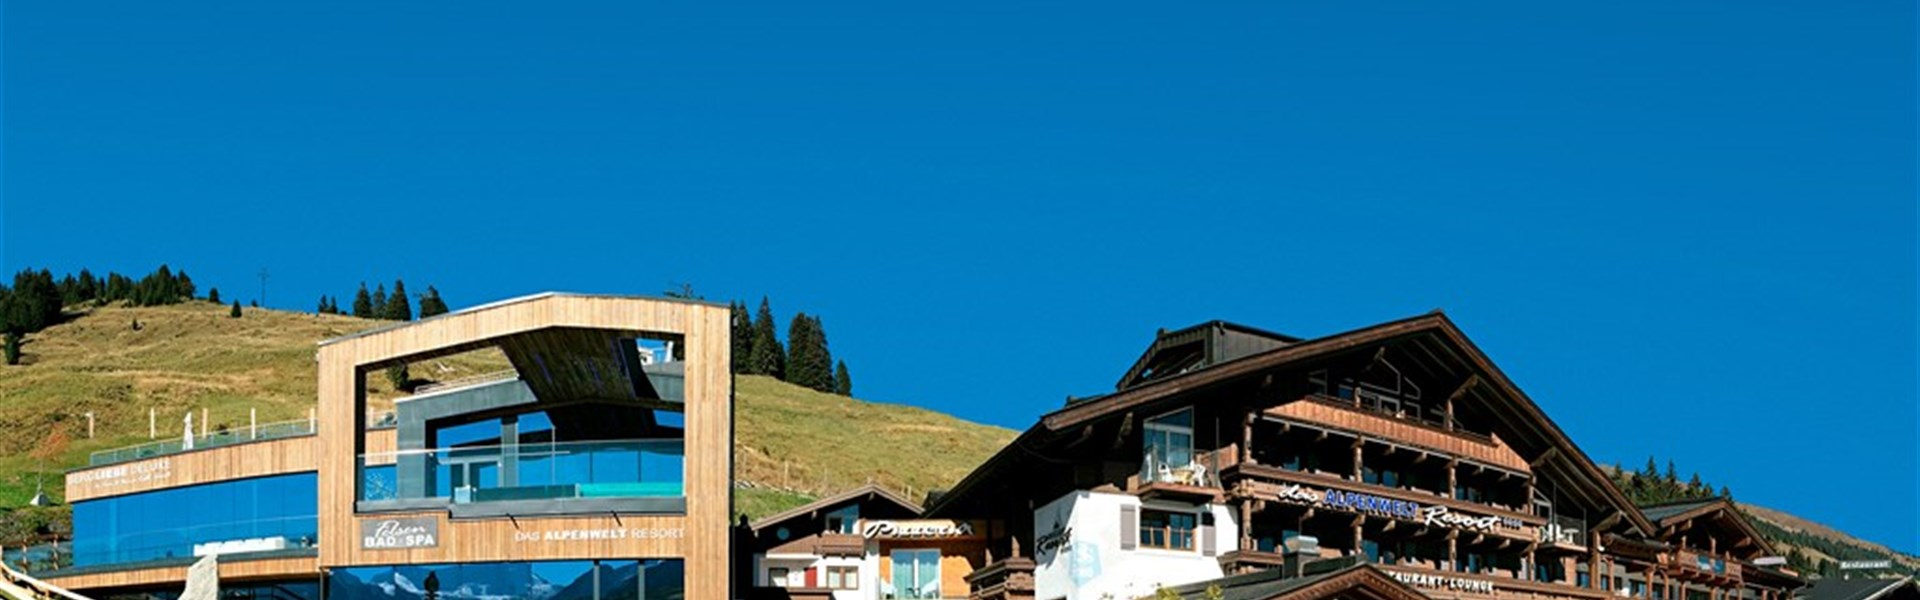 Marco Polo - Das Alpenwelt Resort Lifestyle Family Spa -